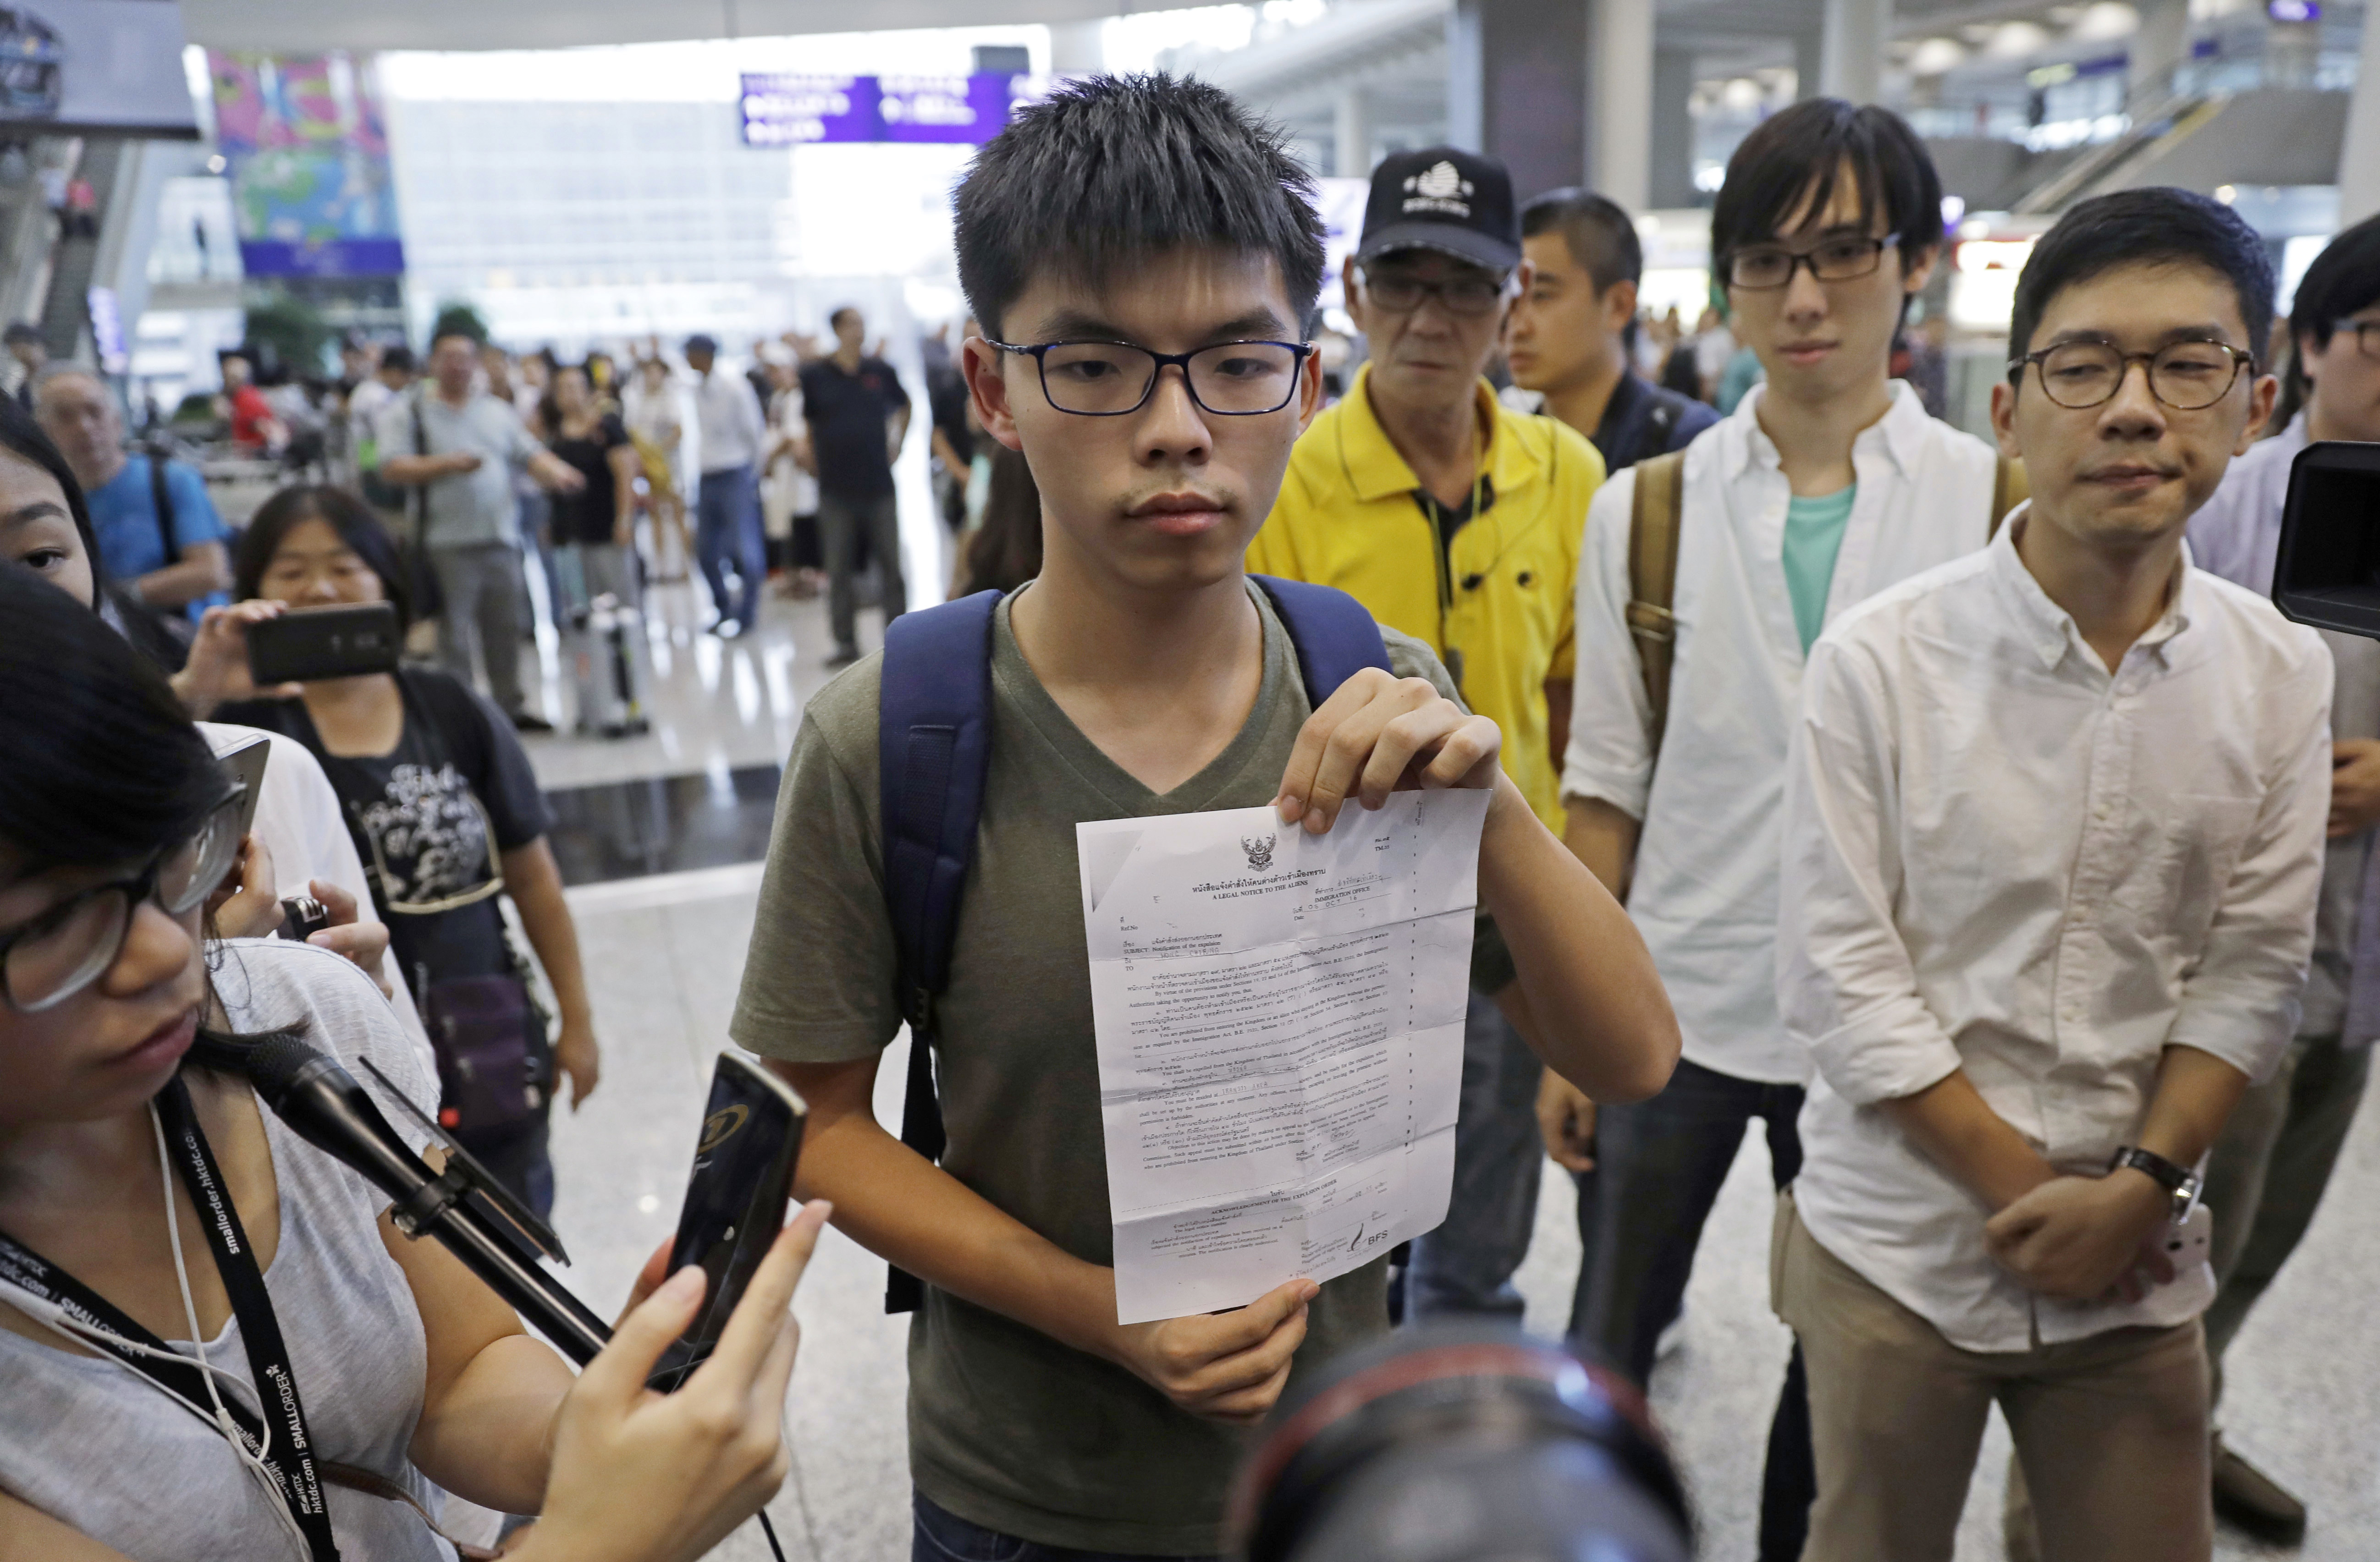 Hong Kong pro-democracy activist Joshua Wong, center, shows a letter from Thailand's immigration office after arriving at Hong Kong airport from Bangkok on Oct. 5, 2016. Thailand stopped the 19-year-old activist from entering the country and sent him back to Hong Kong, officials said, in a move supporters suspected was triggered by pressure from Beijing